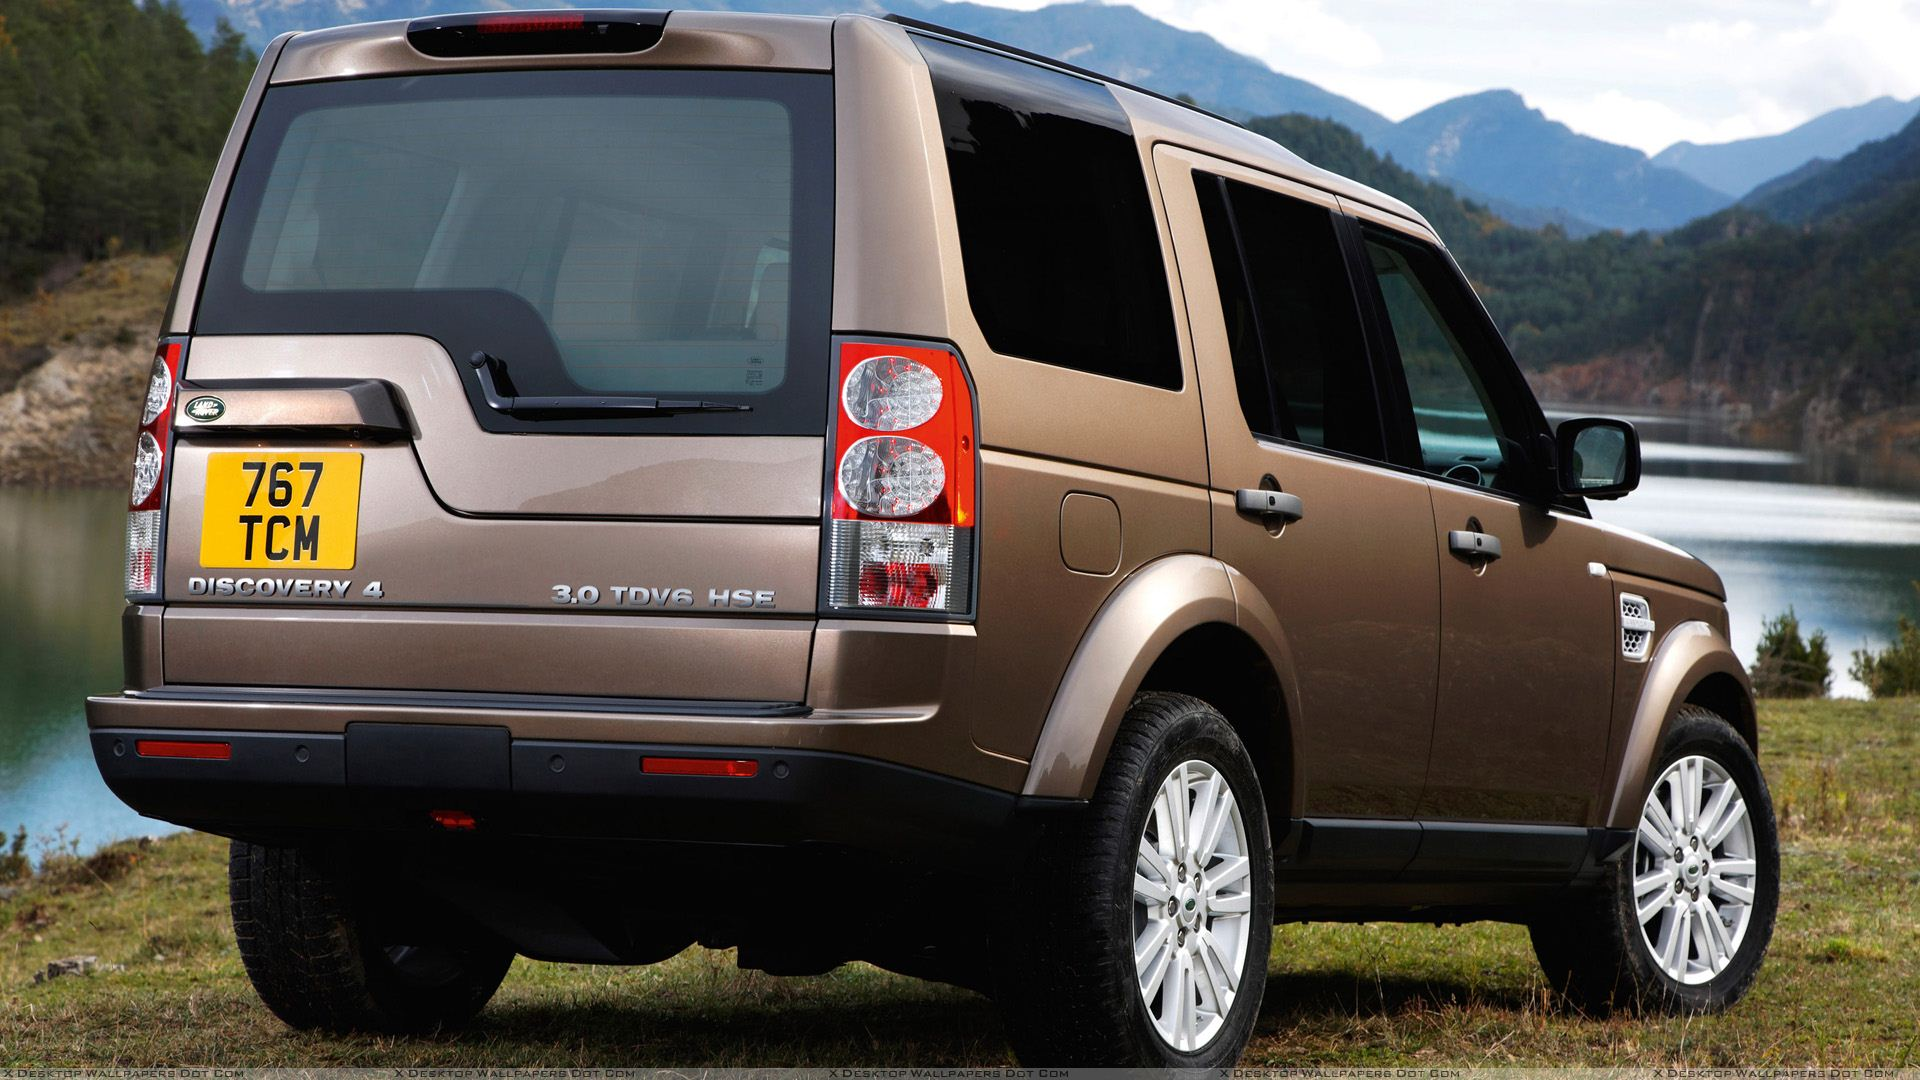 2010%20Land%20Rover%20Discovery%20In%20Brown%20Side%20Back%20Pose.jpg